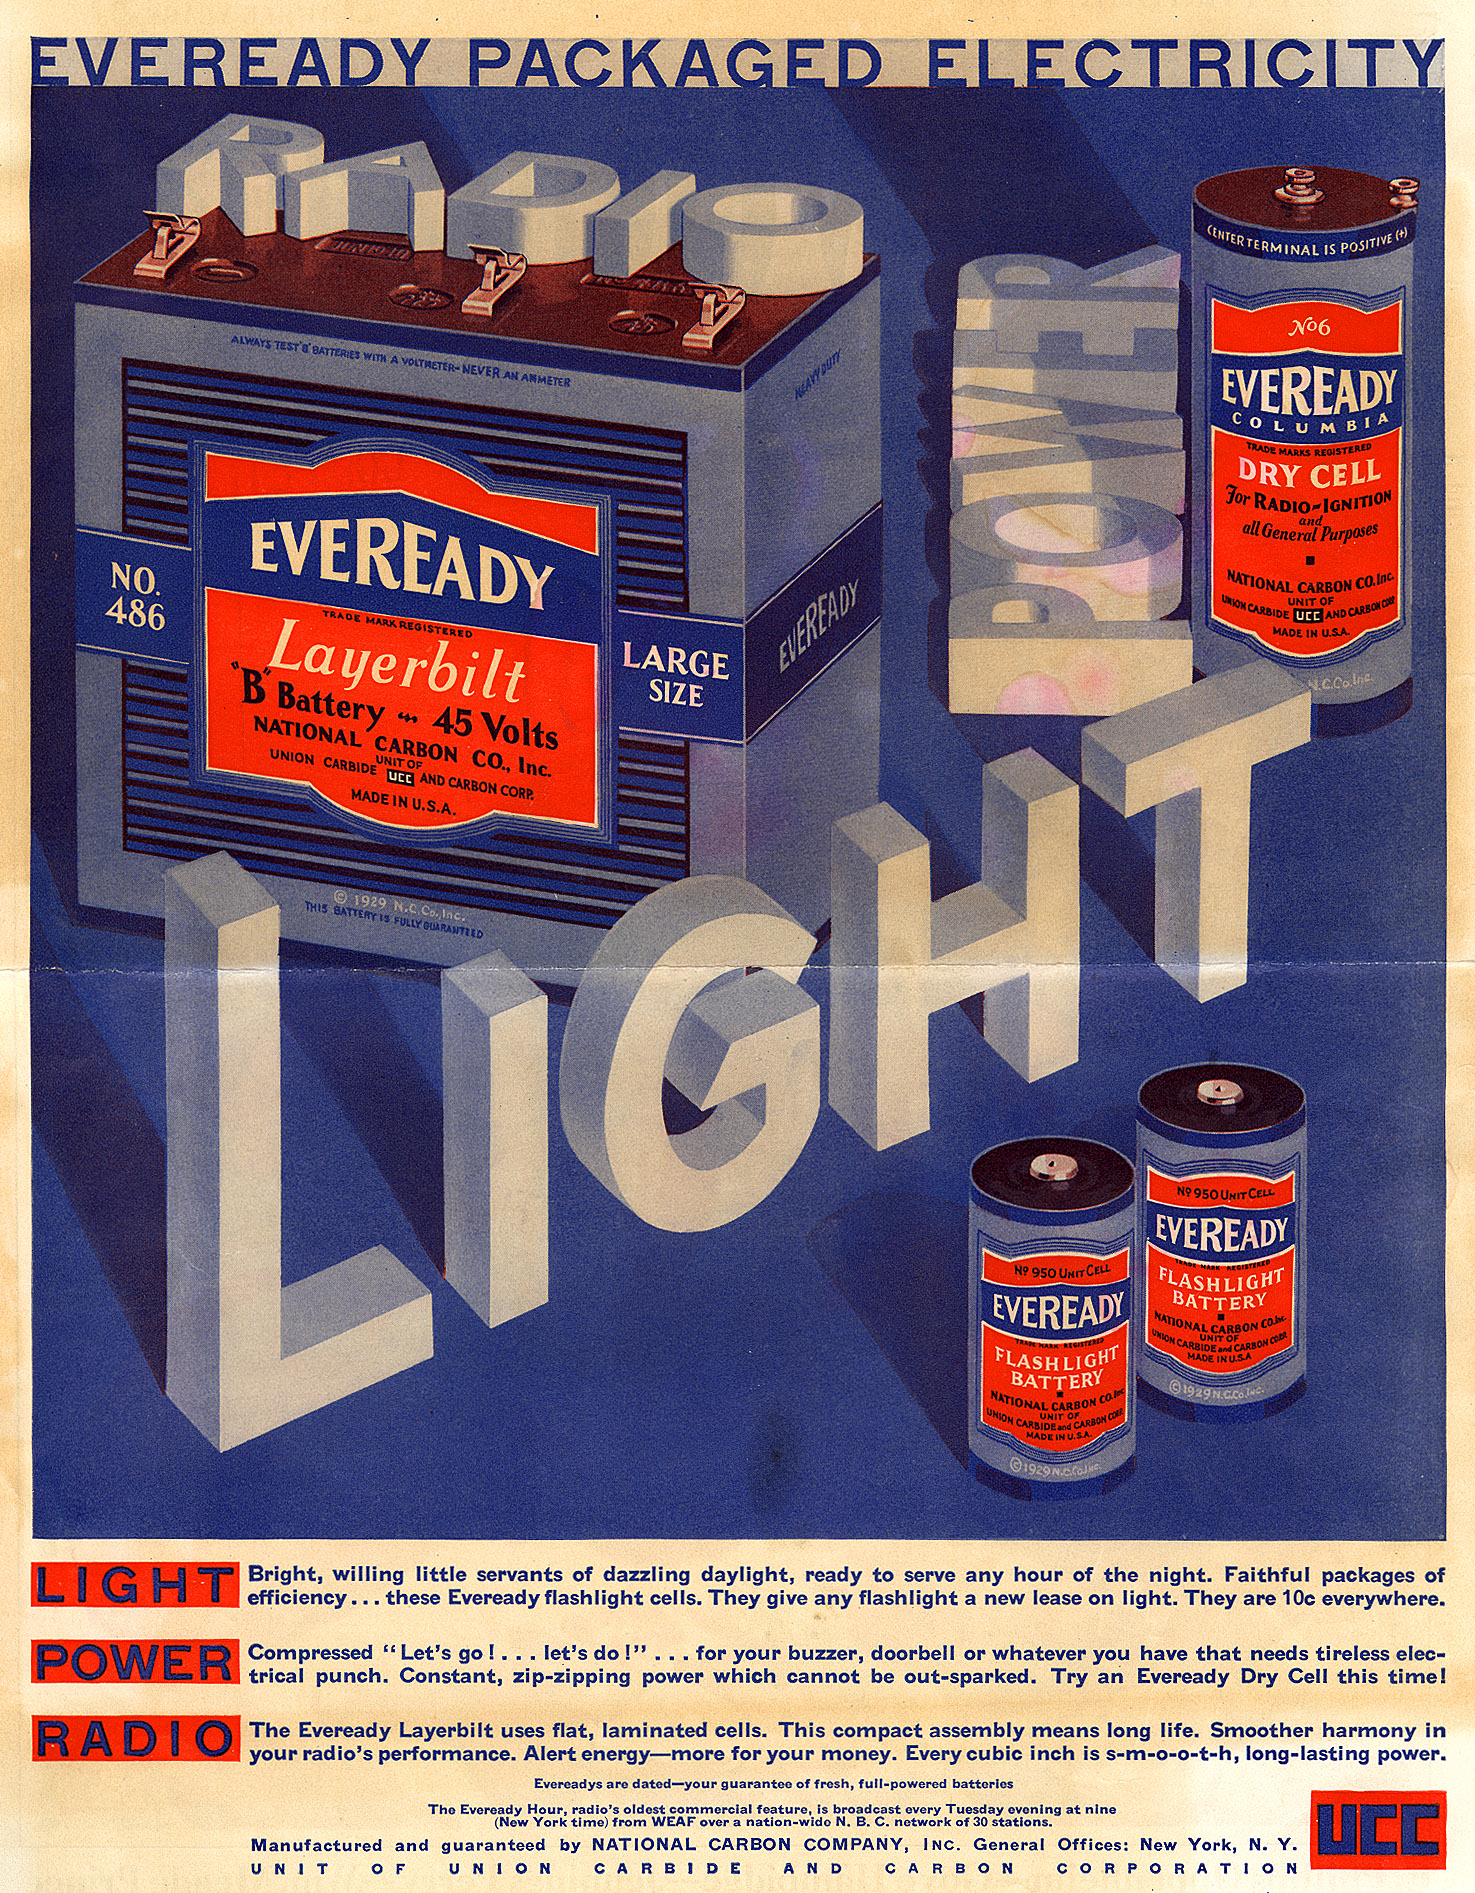 Eveready_Packaged_Electricity